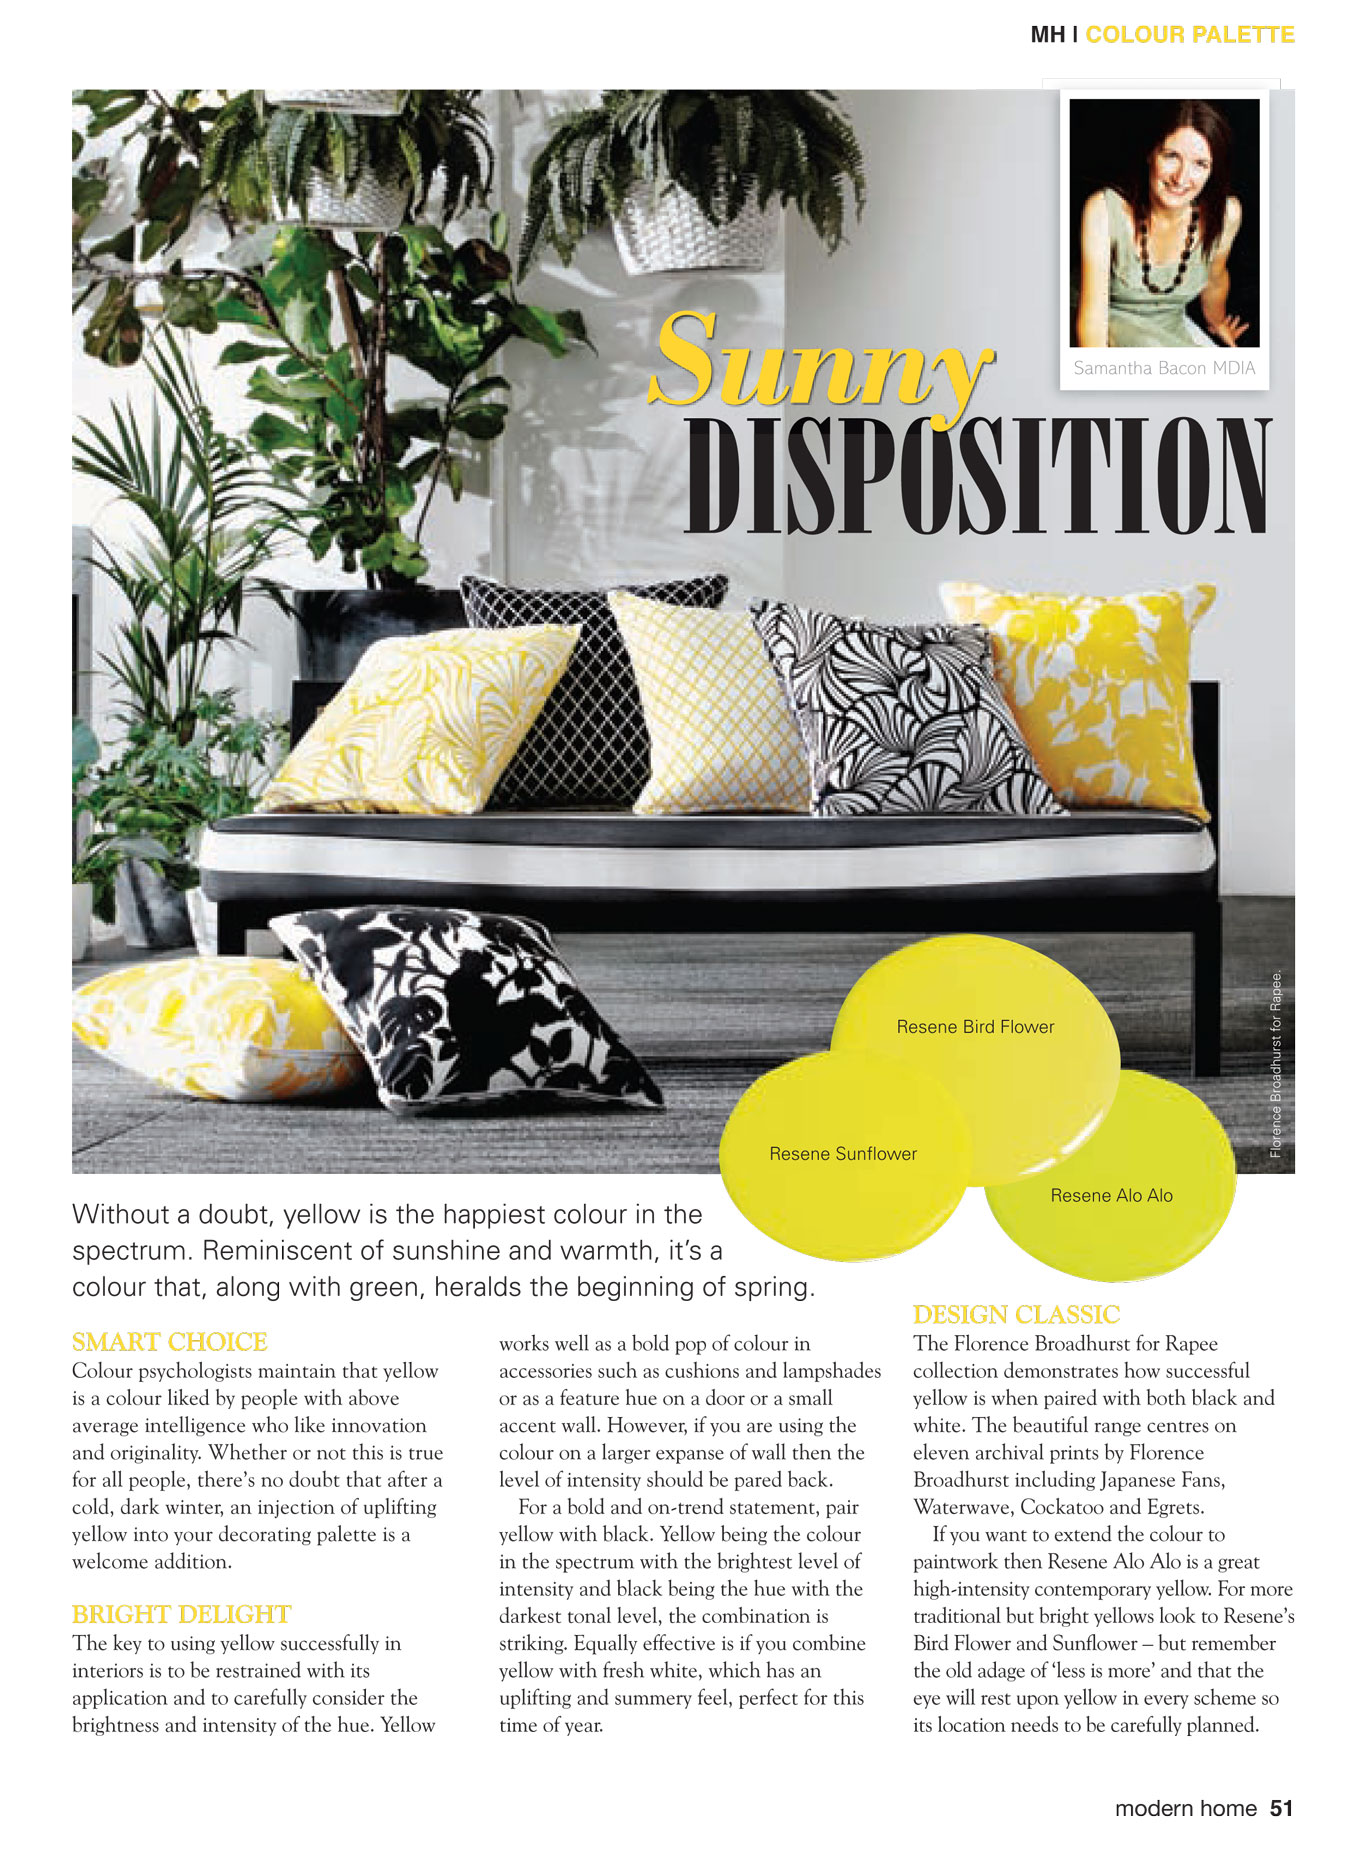 Modern Home Magazine - inspiration for using beautiful yellow